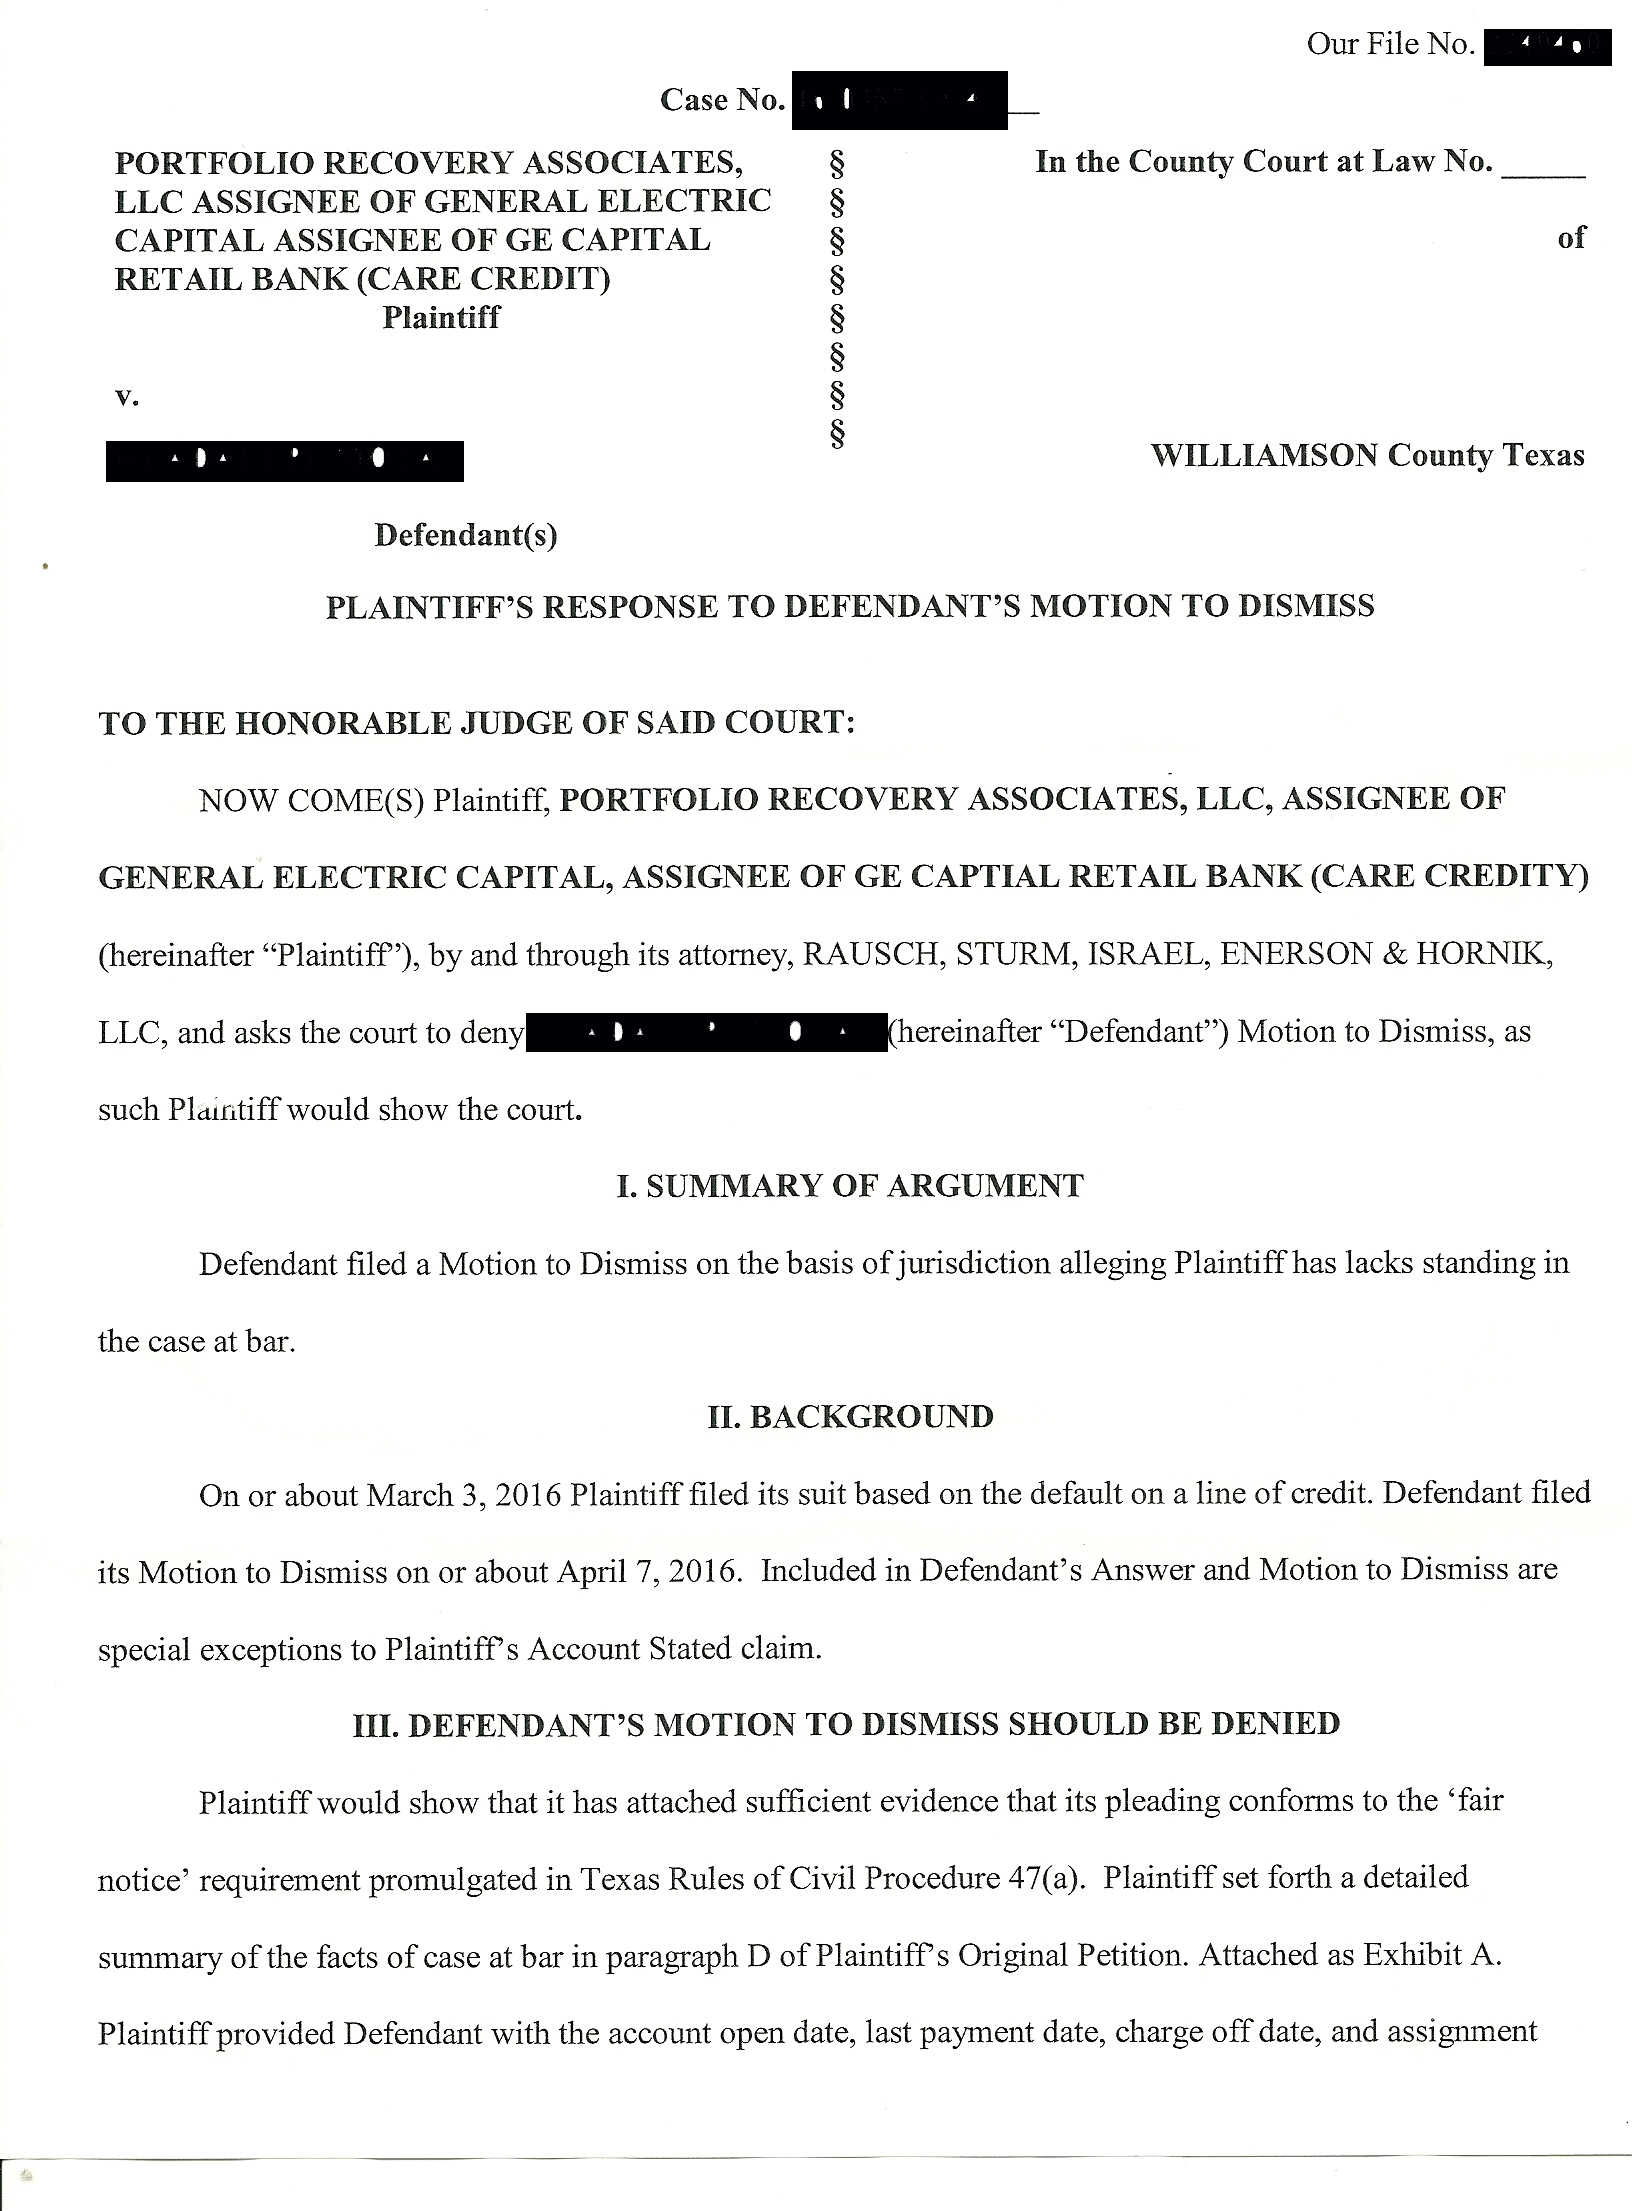 Being sued by Portfolio Associates in Texas - Williamson County - Is